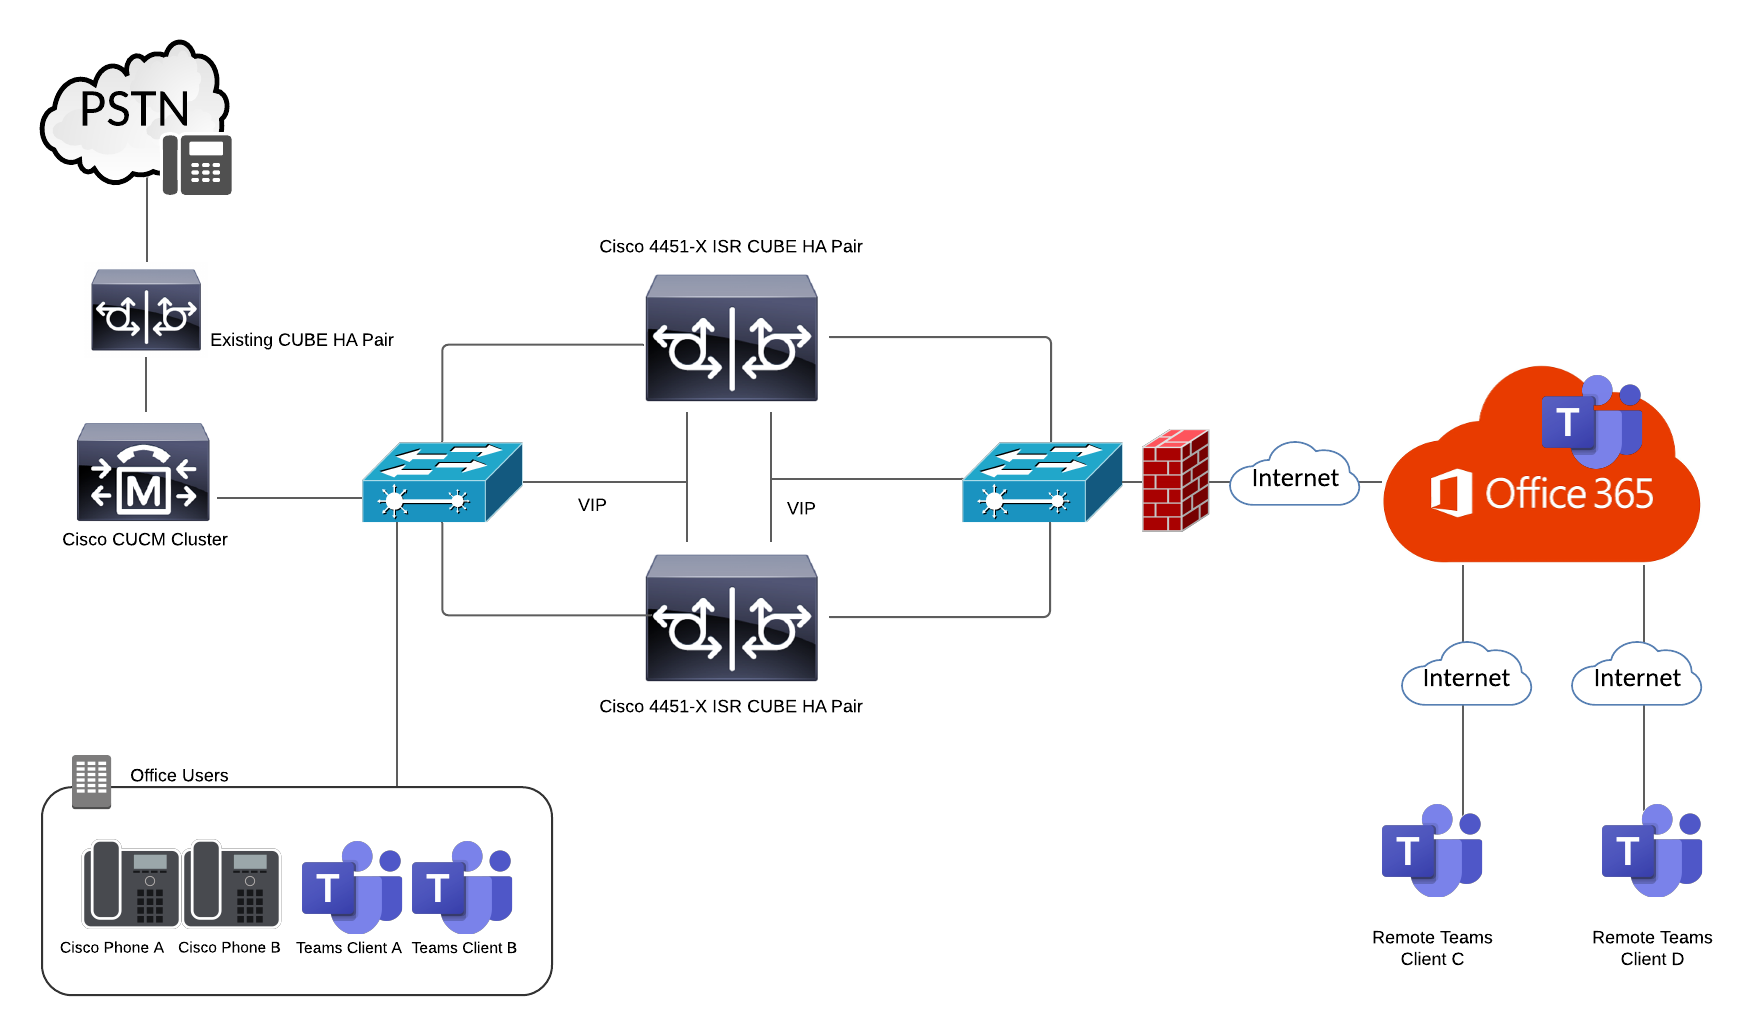 Low-level design topology of the company's direct routing integration.